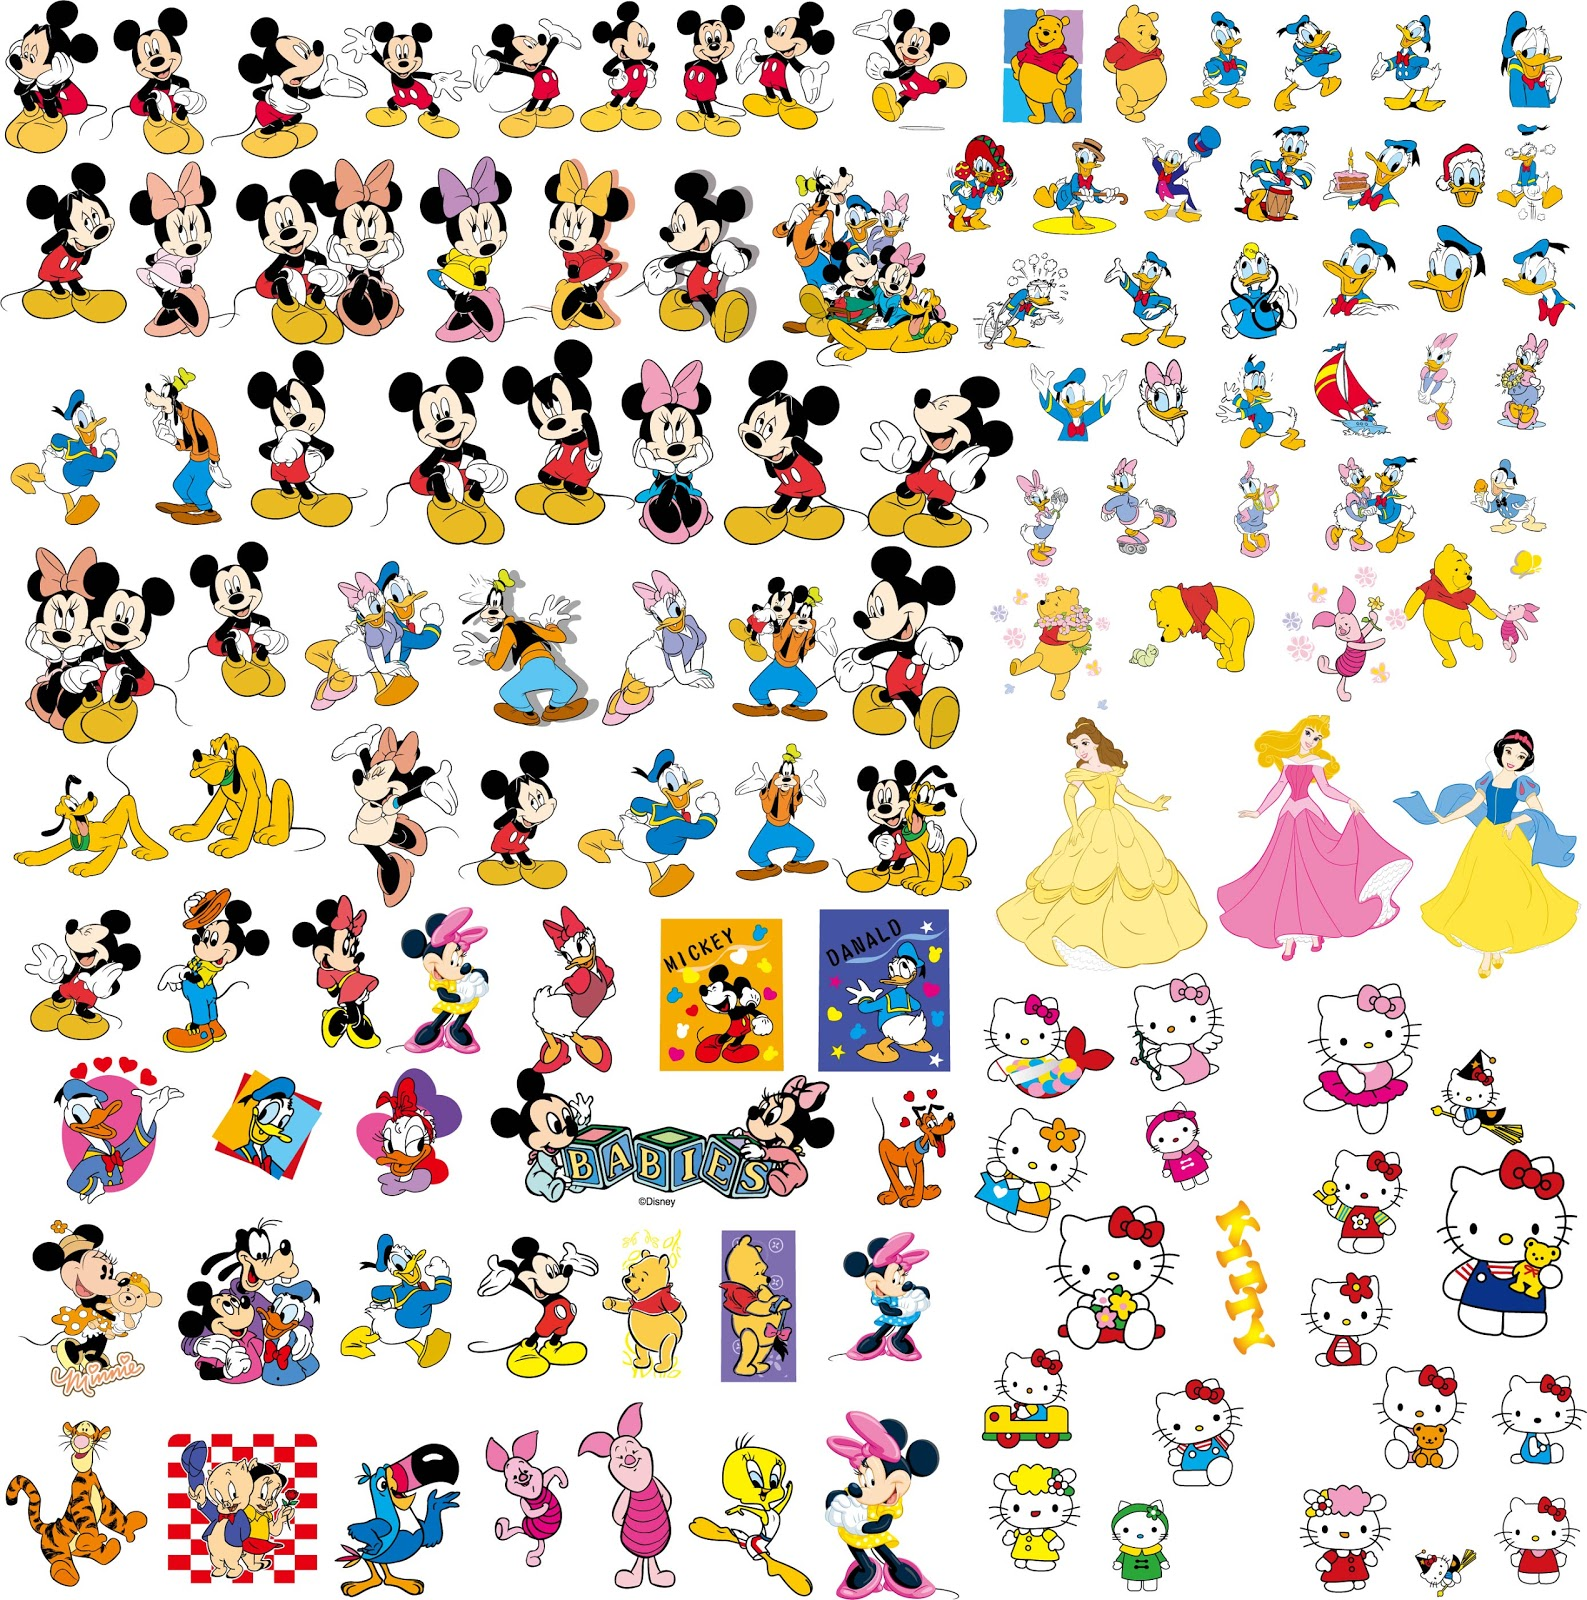 disney clipart eps - photo #19